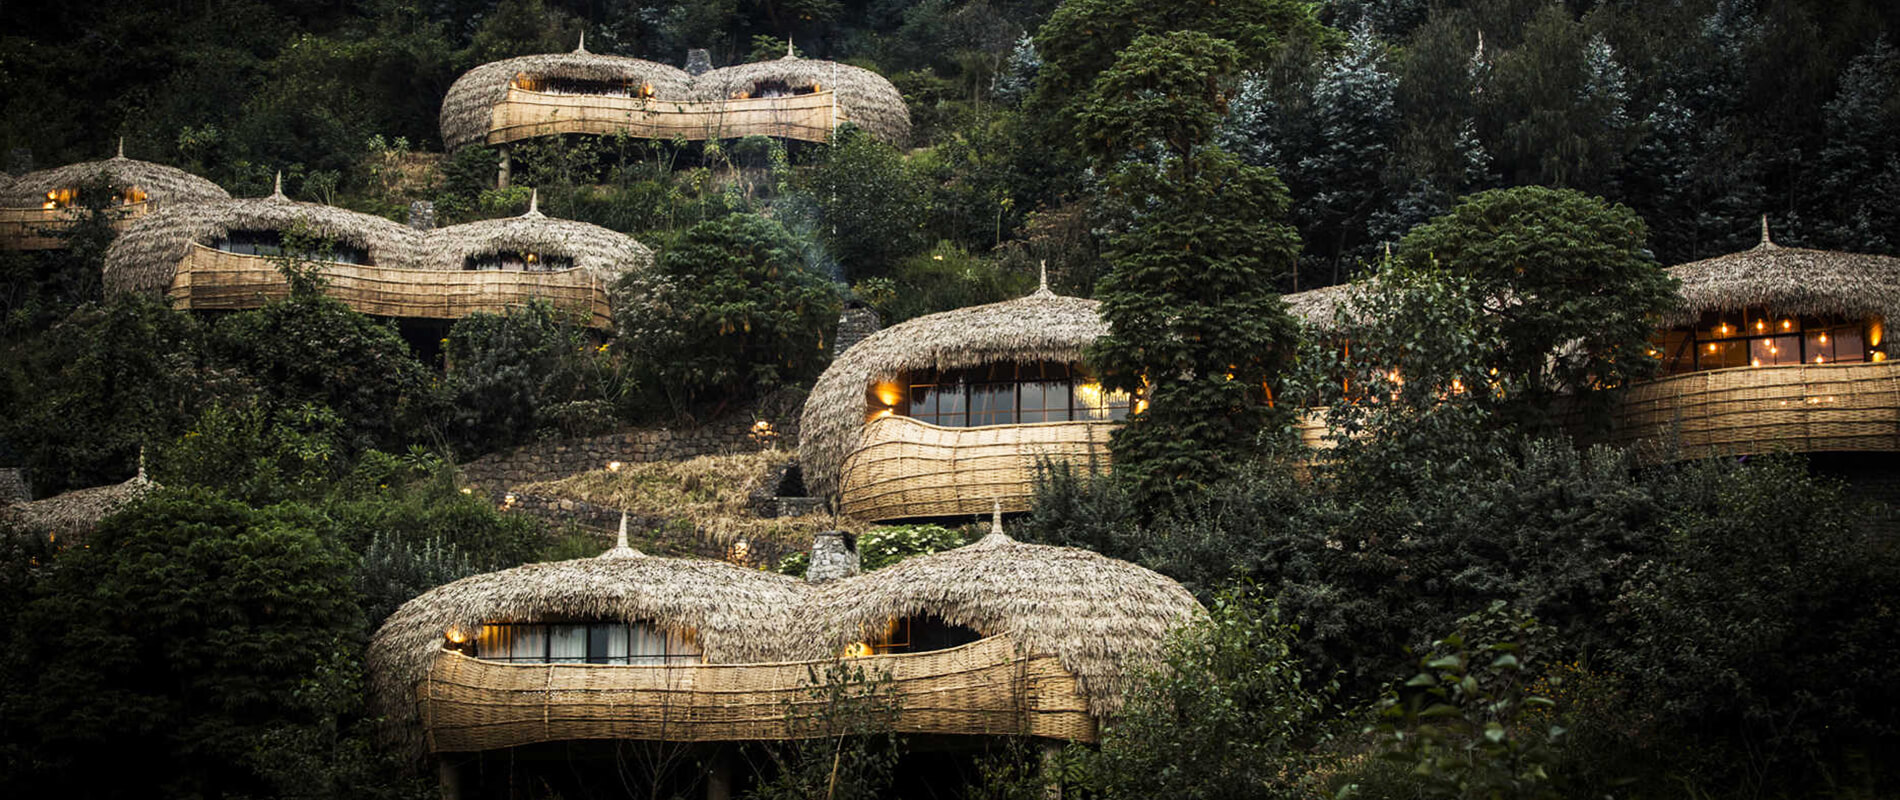 The Bisate Lodge in Rwanda, an Authentic Jewel of Eco-Sustainability